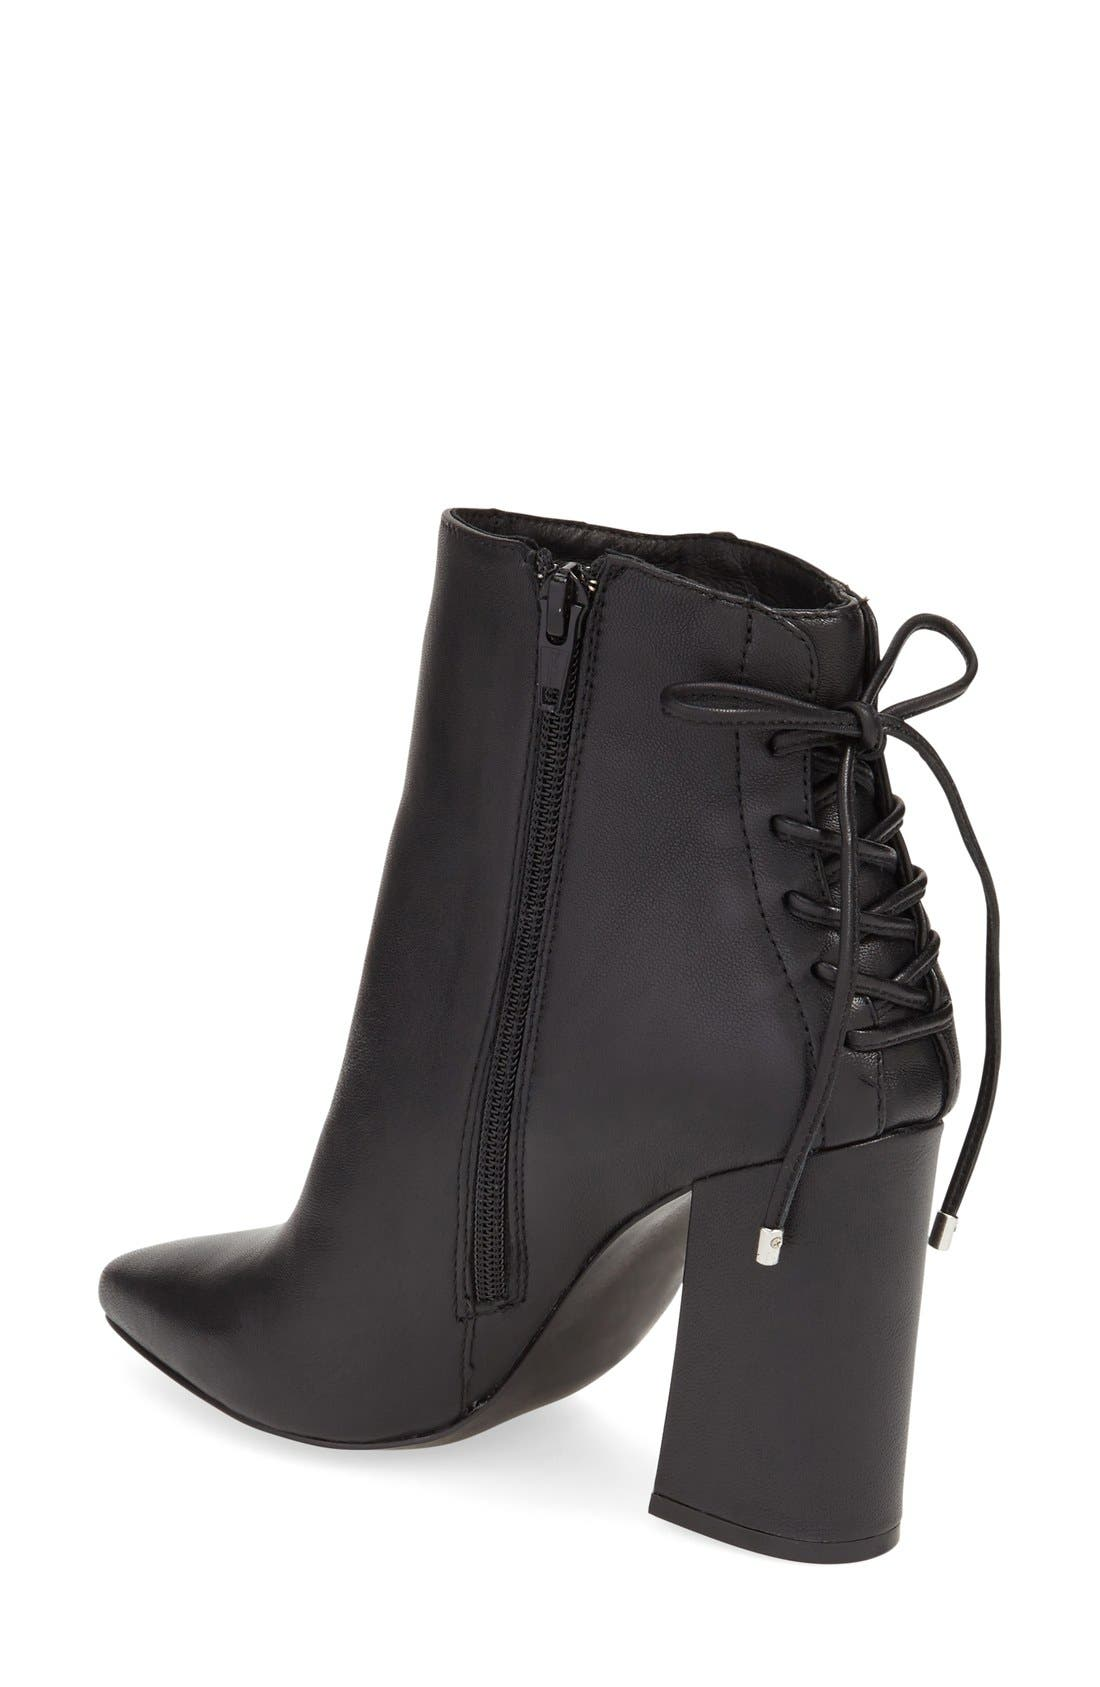 'Siren' Pointy Toe Bootie,                             Alternate thumbnail 2, color,                             001